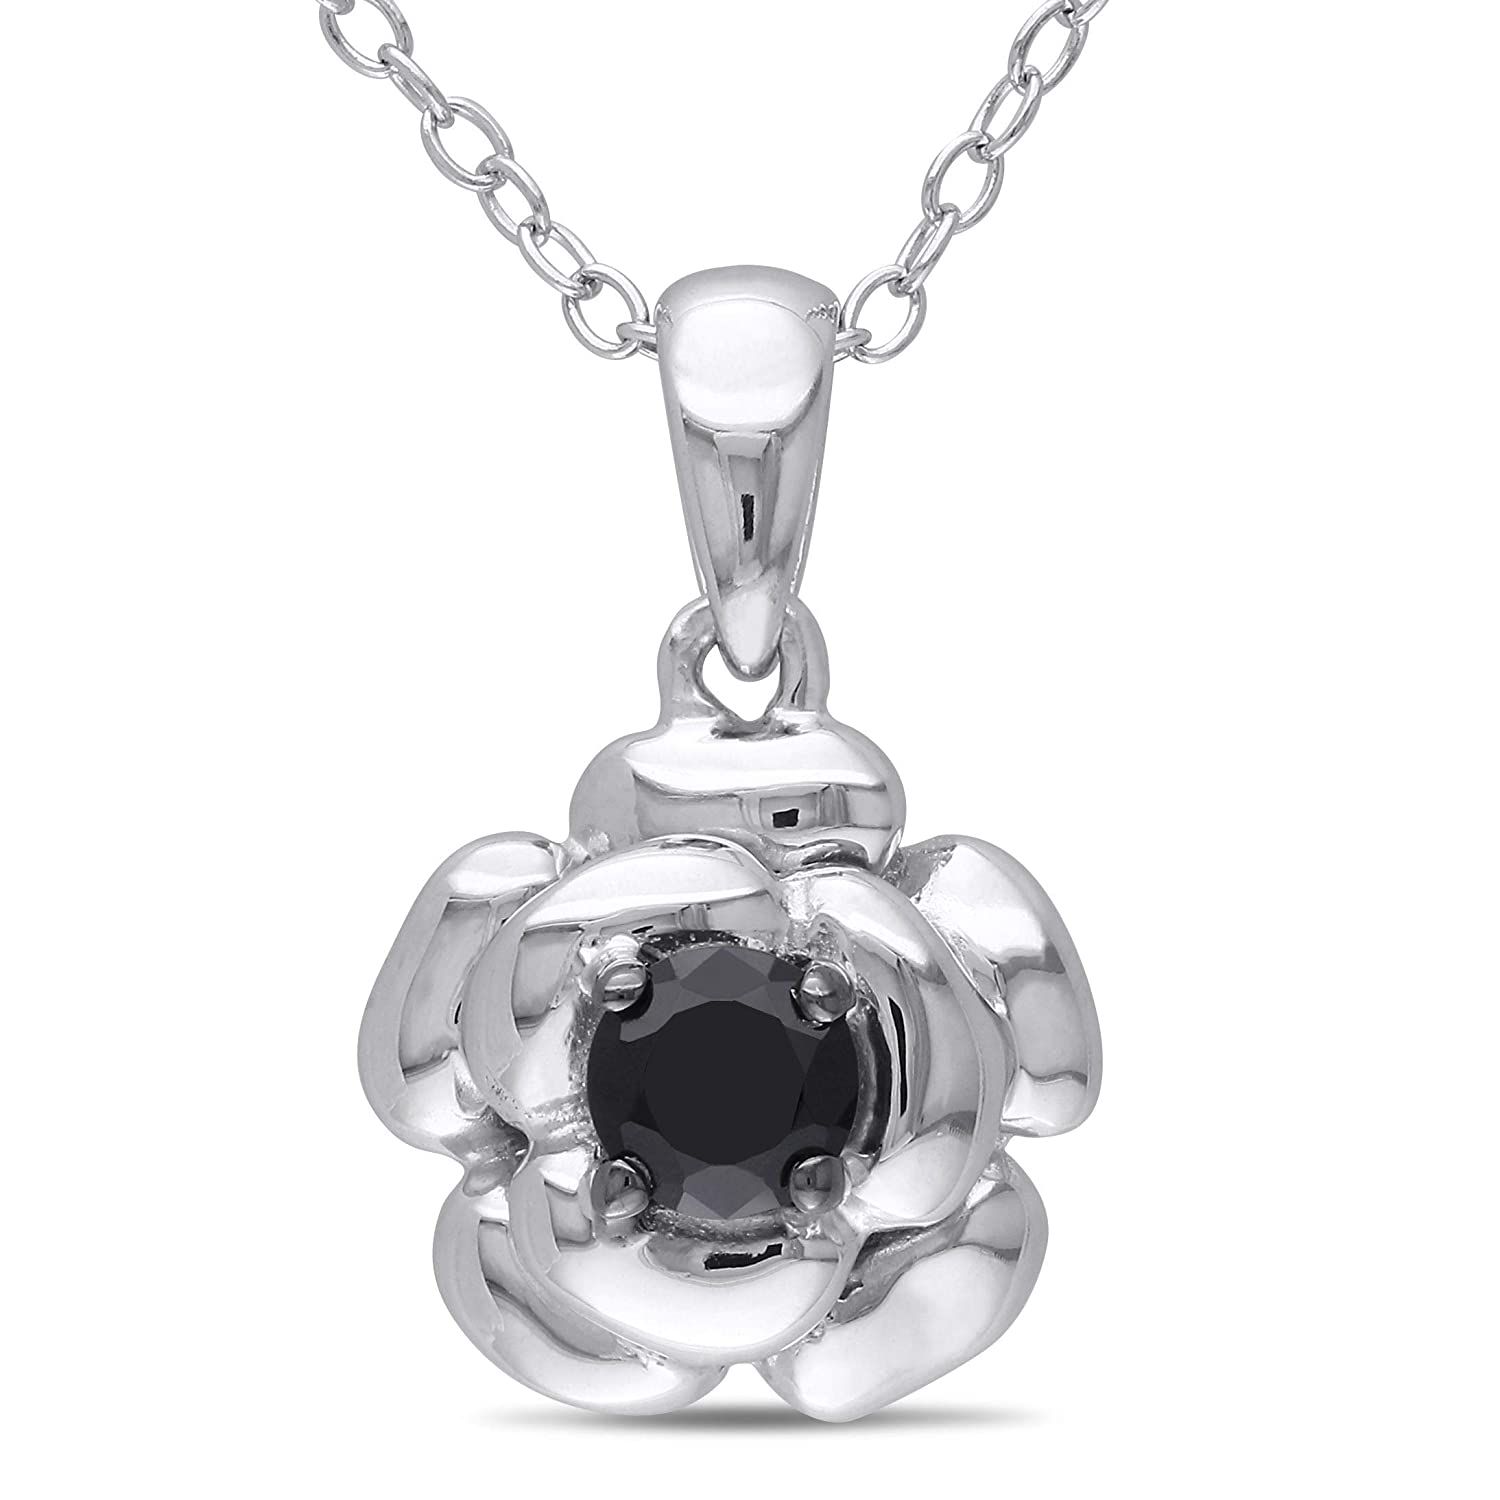 1.20Ctw Round Cut Black Simulated Diamond Flower Women Pendant Necklace14K White Gold Finish